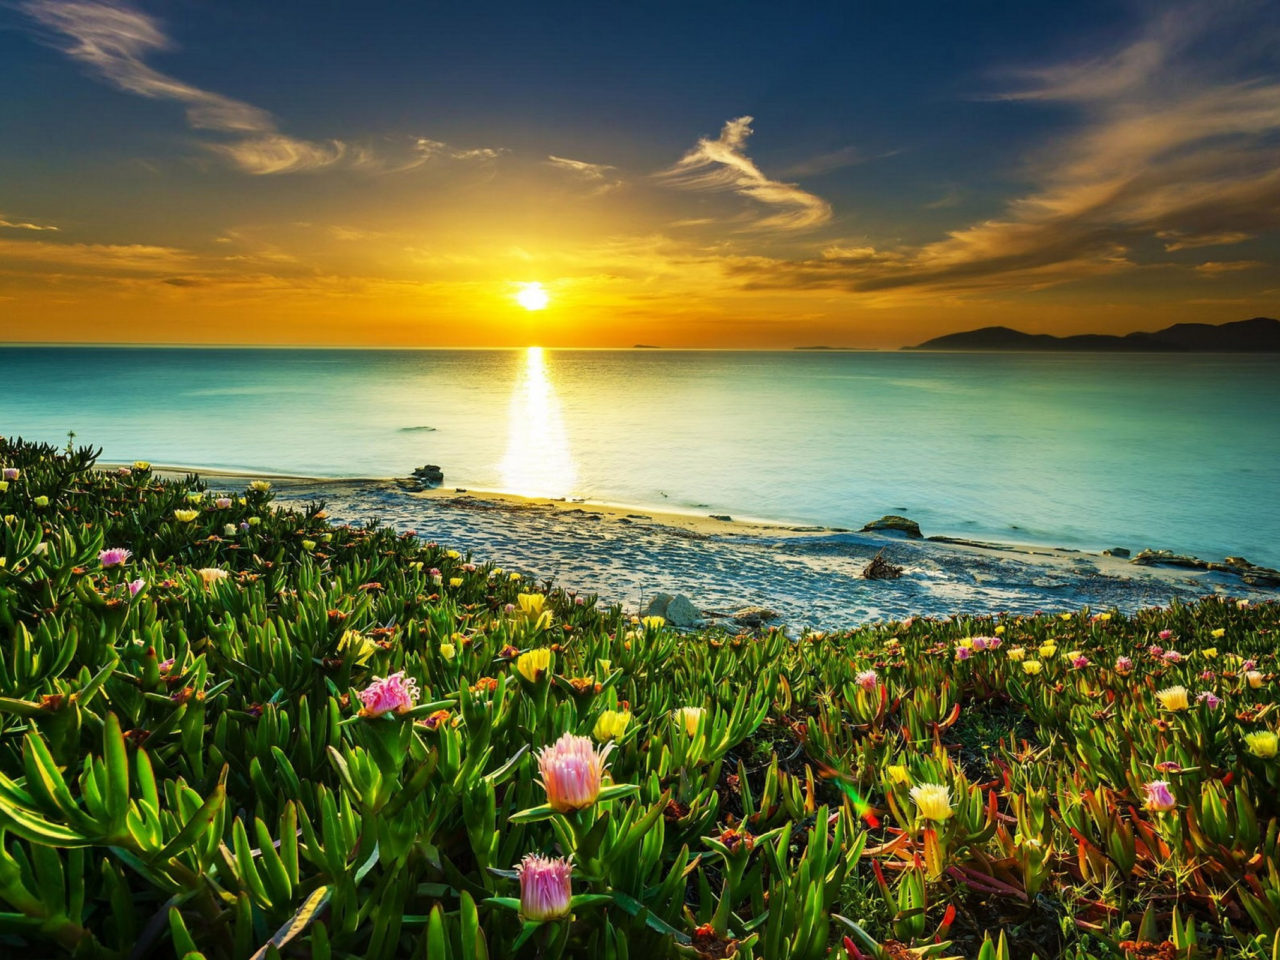 Sea Coast Meadow With Tropical Flowers Sandy Beach Calm Sea Orange Sky Sunset Hd Wallpapers For